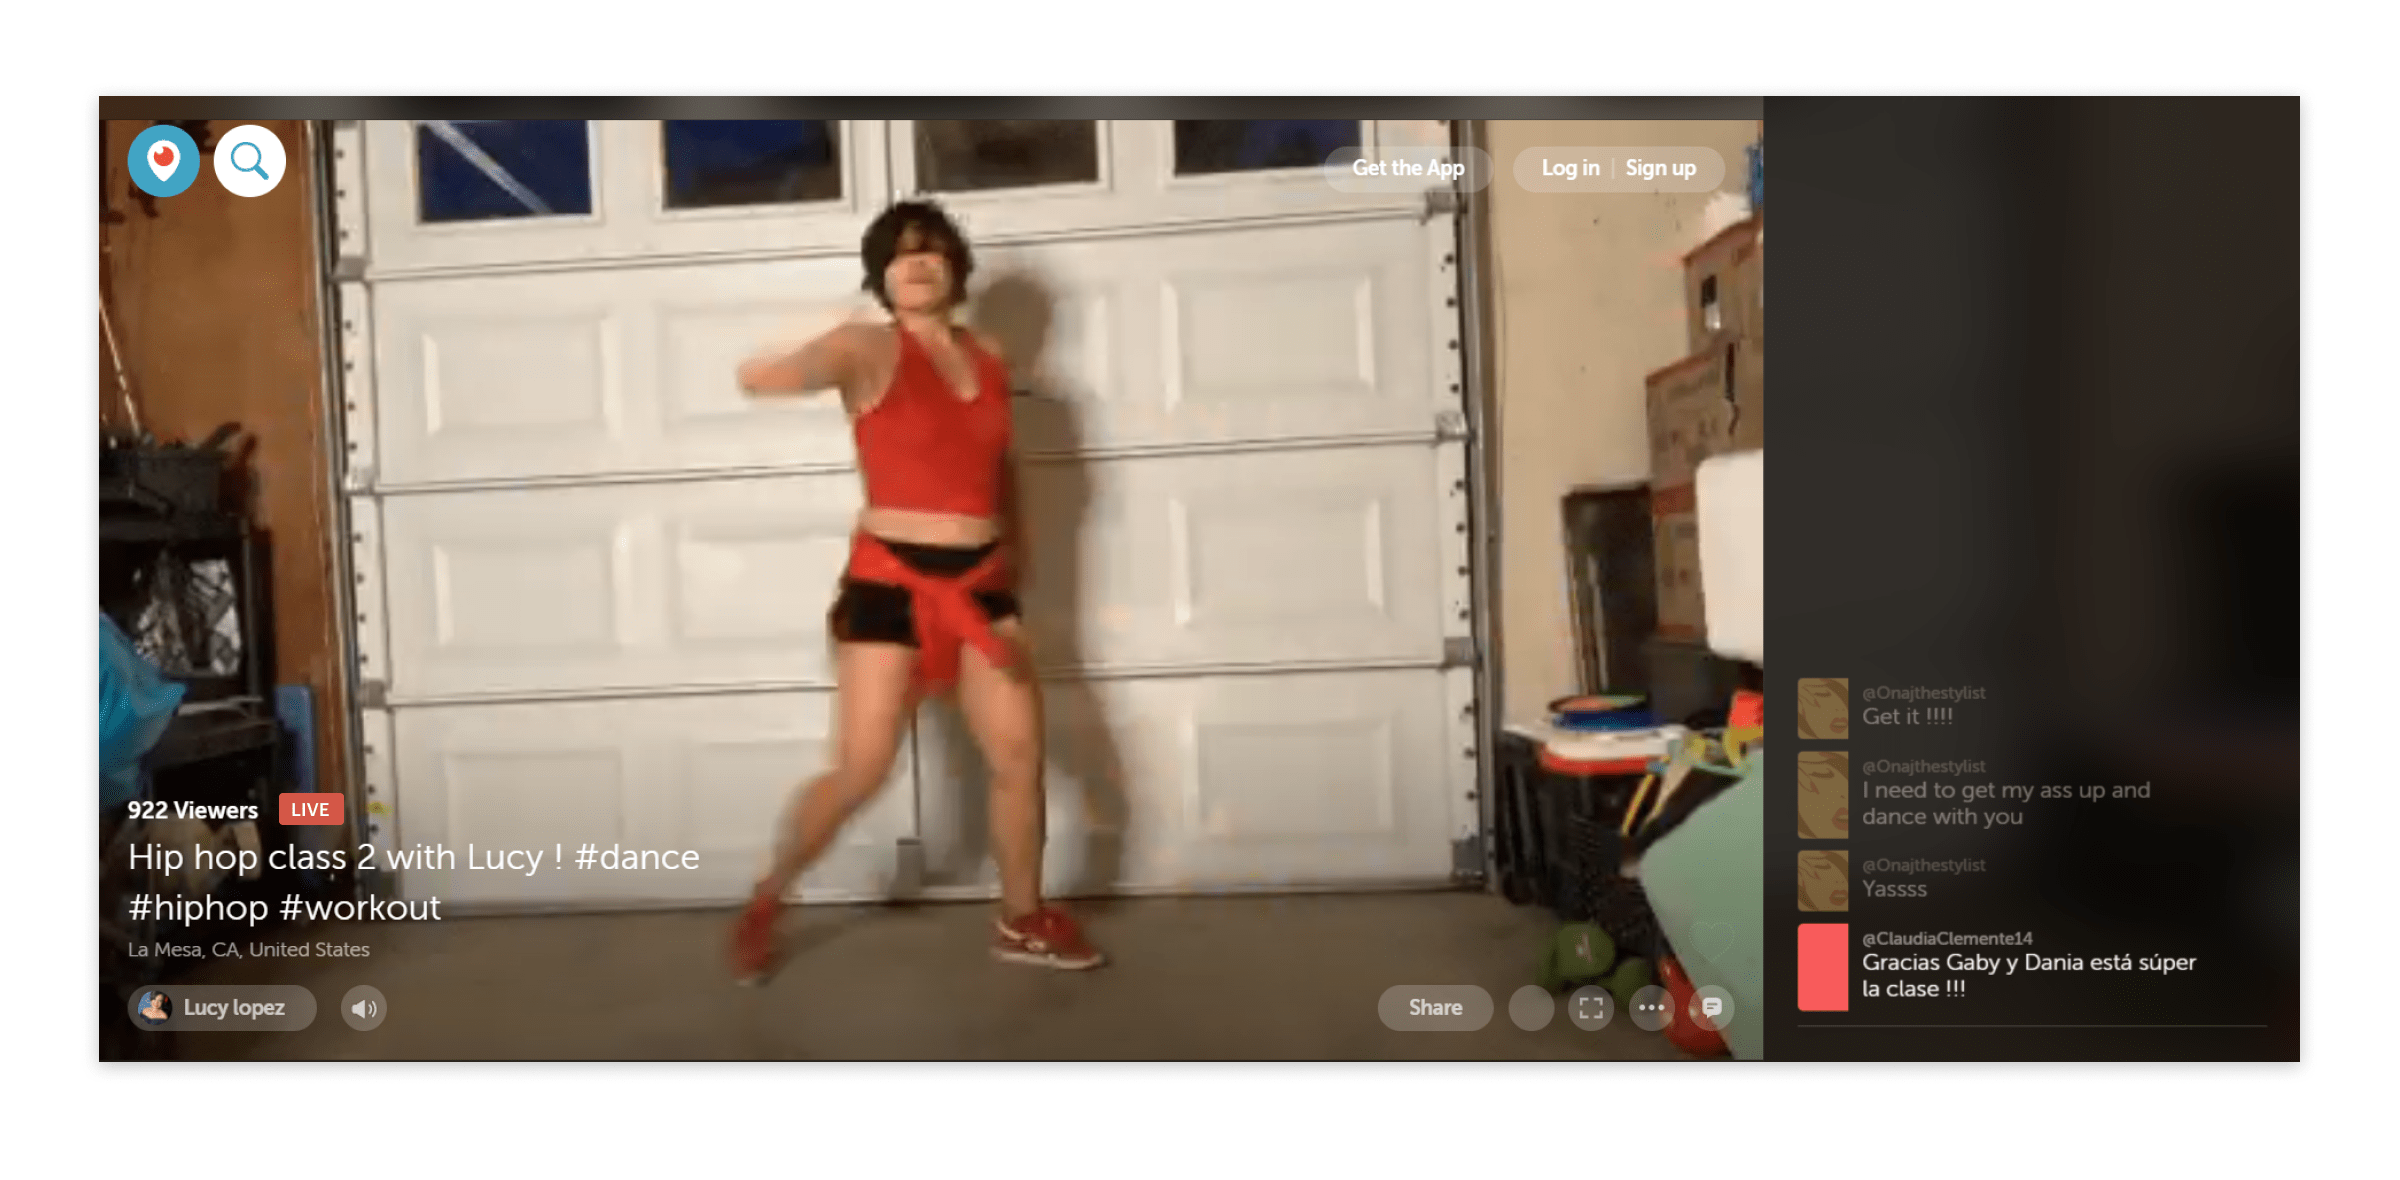 Live streaming dance classes on Periscope